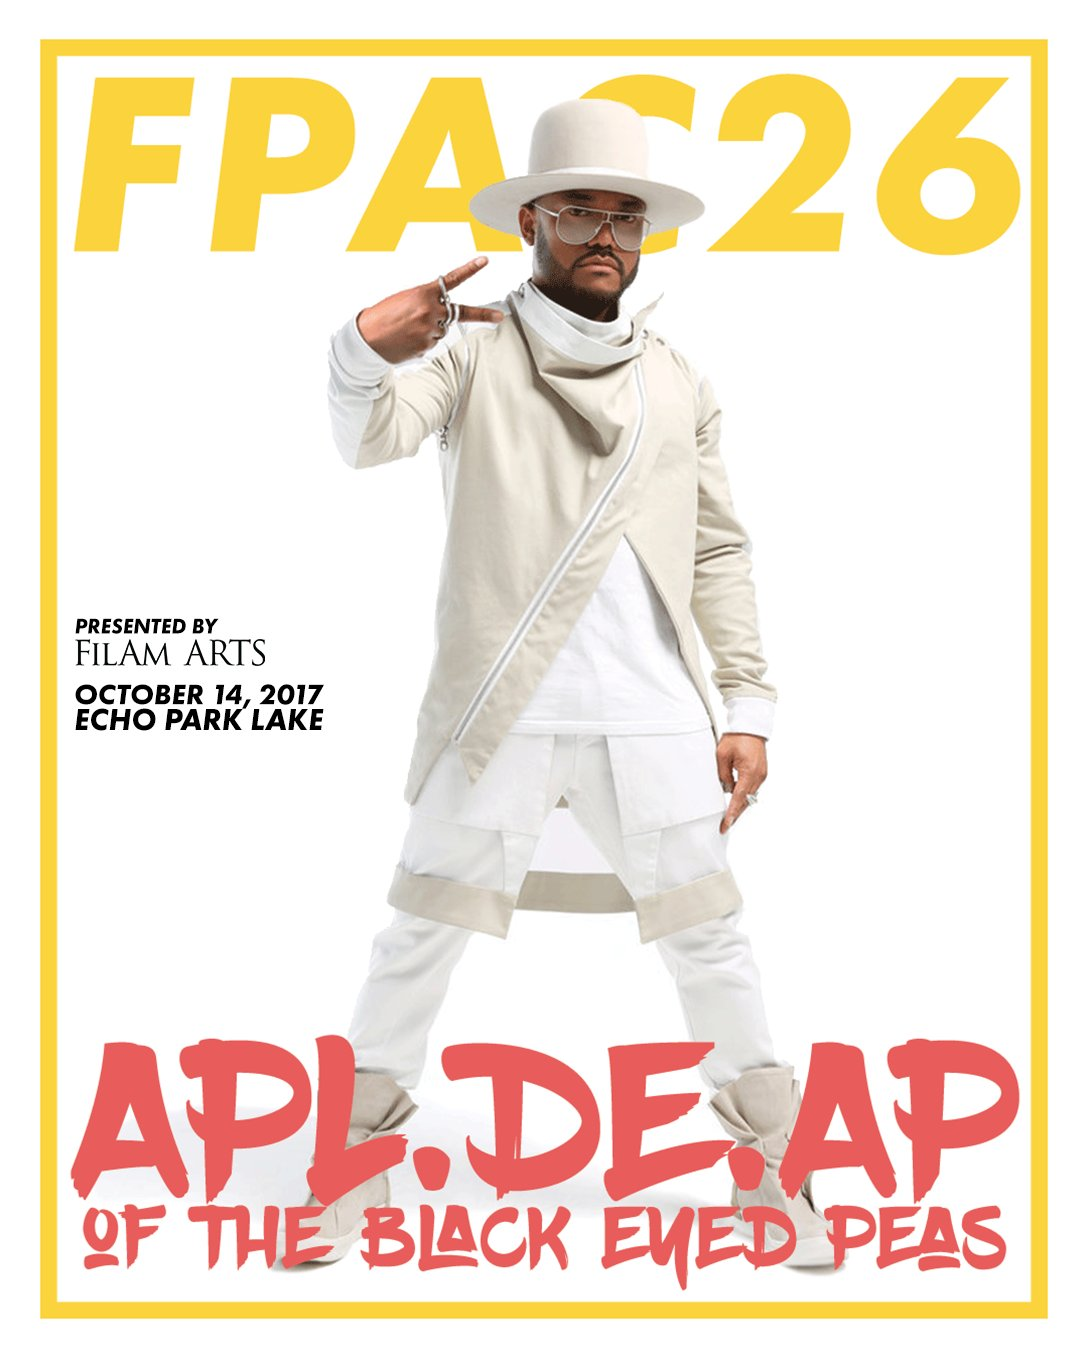 Tomorrow. Our brother @apldeap headlines @FilAmARTS. #FPAC26 Visit https://t.co/s3jZxgZ24b for more info. https://t.co/UB6wuzttj2